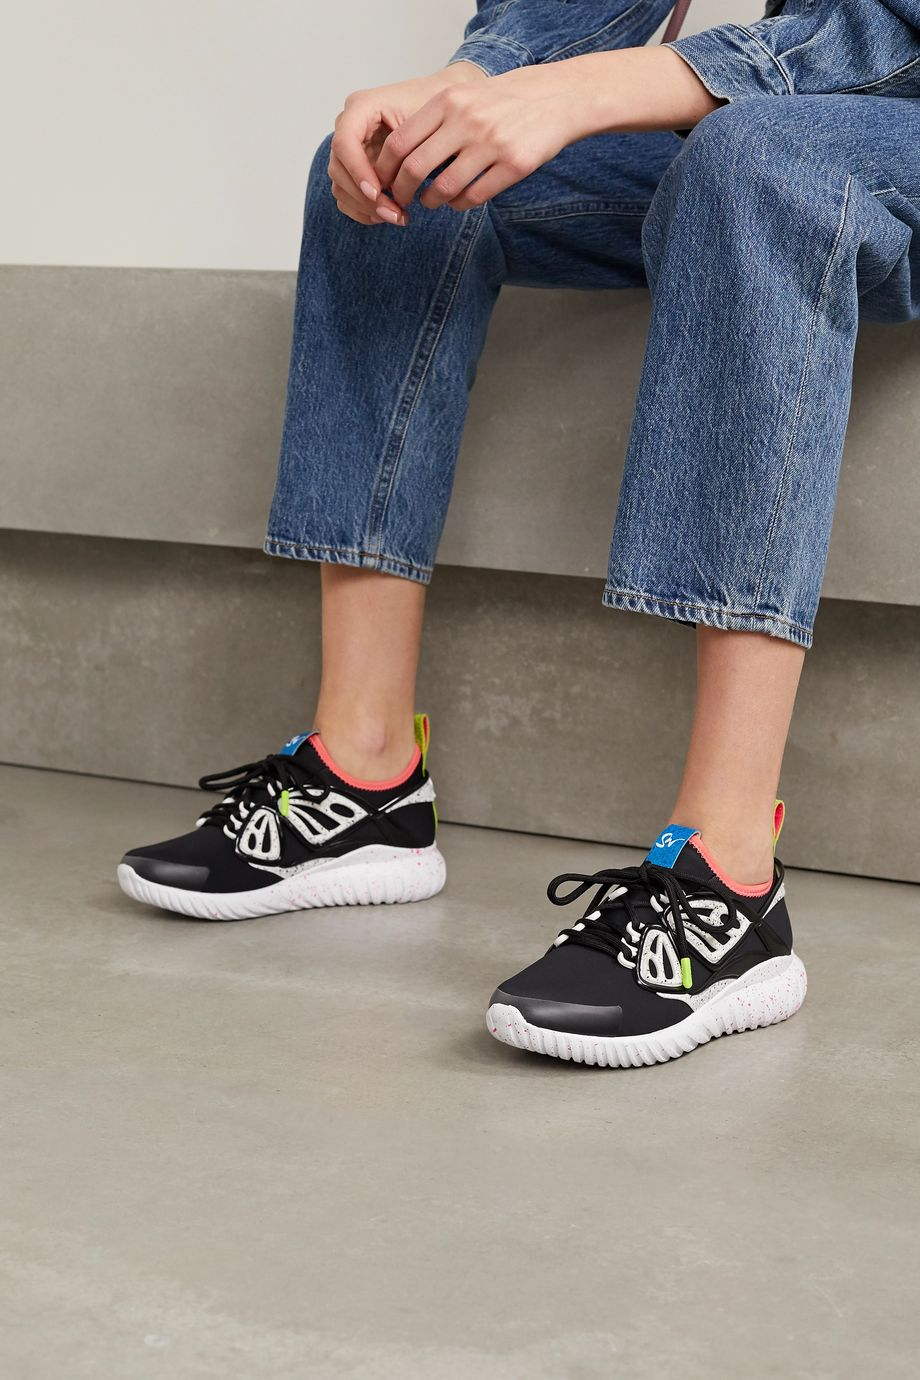 Sophia Webster Fly-By rubber and leather-trimmed neoprene sneakers